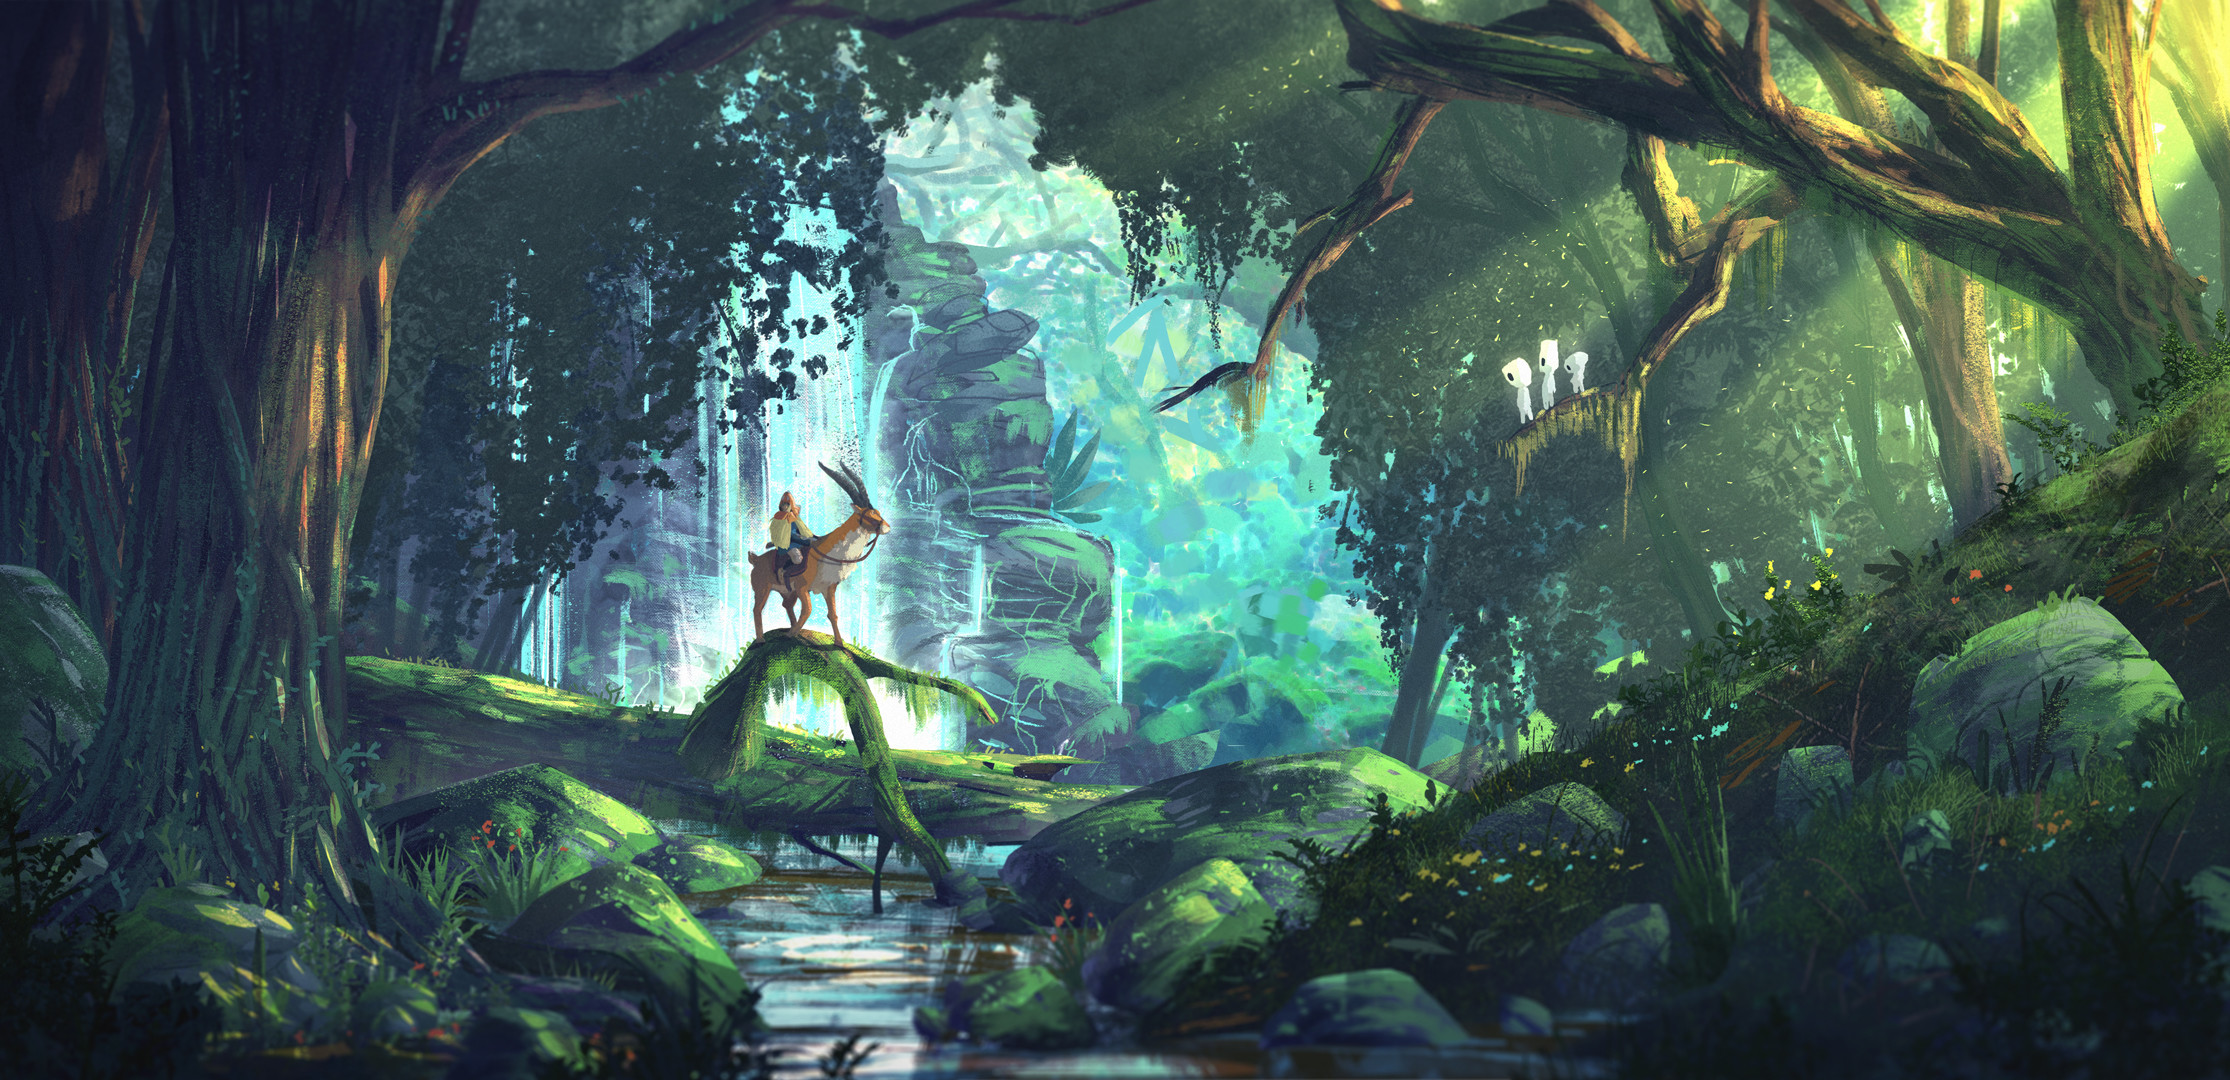 Painted Art Forest